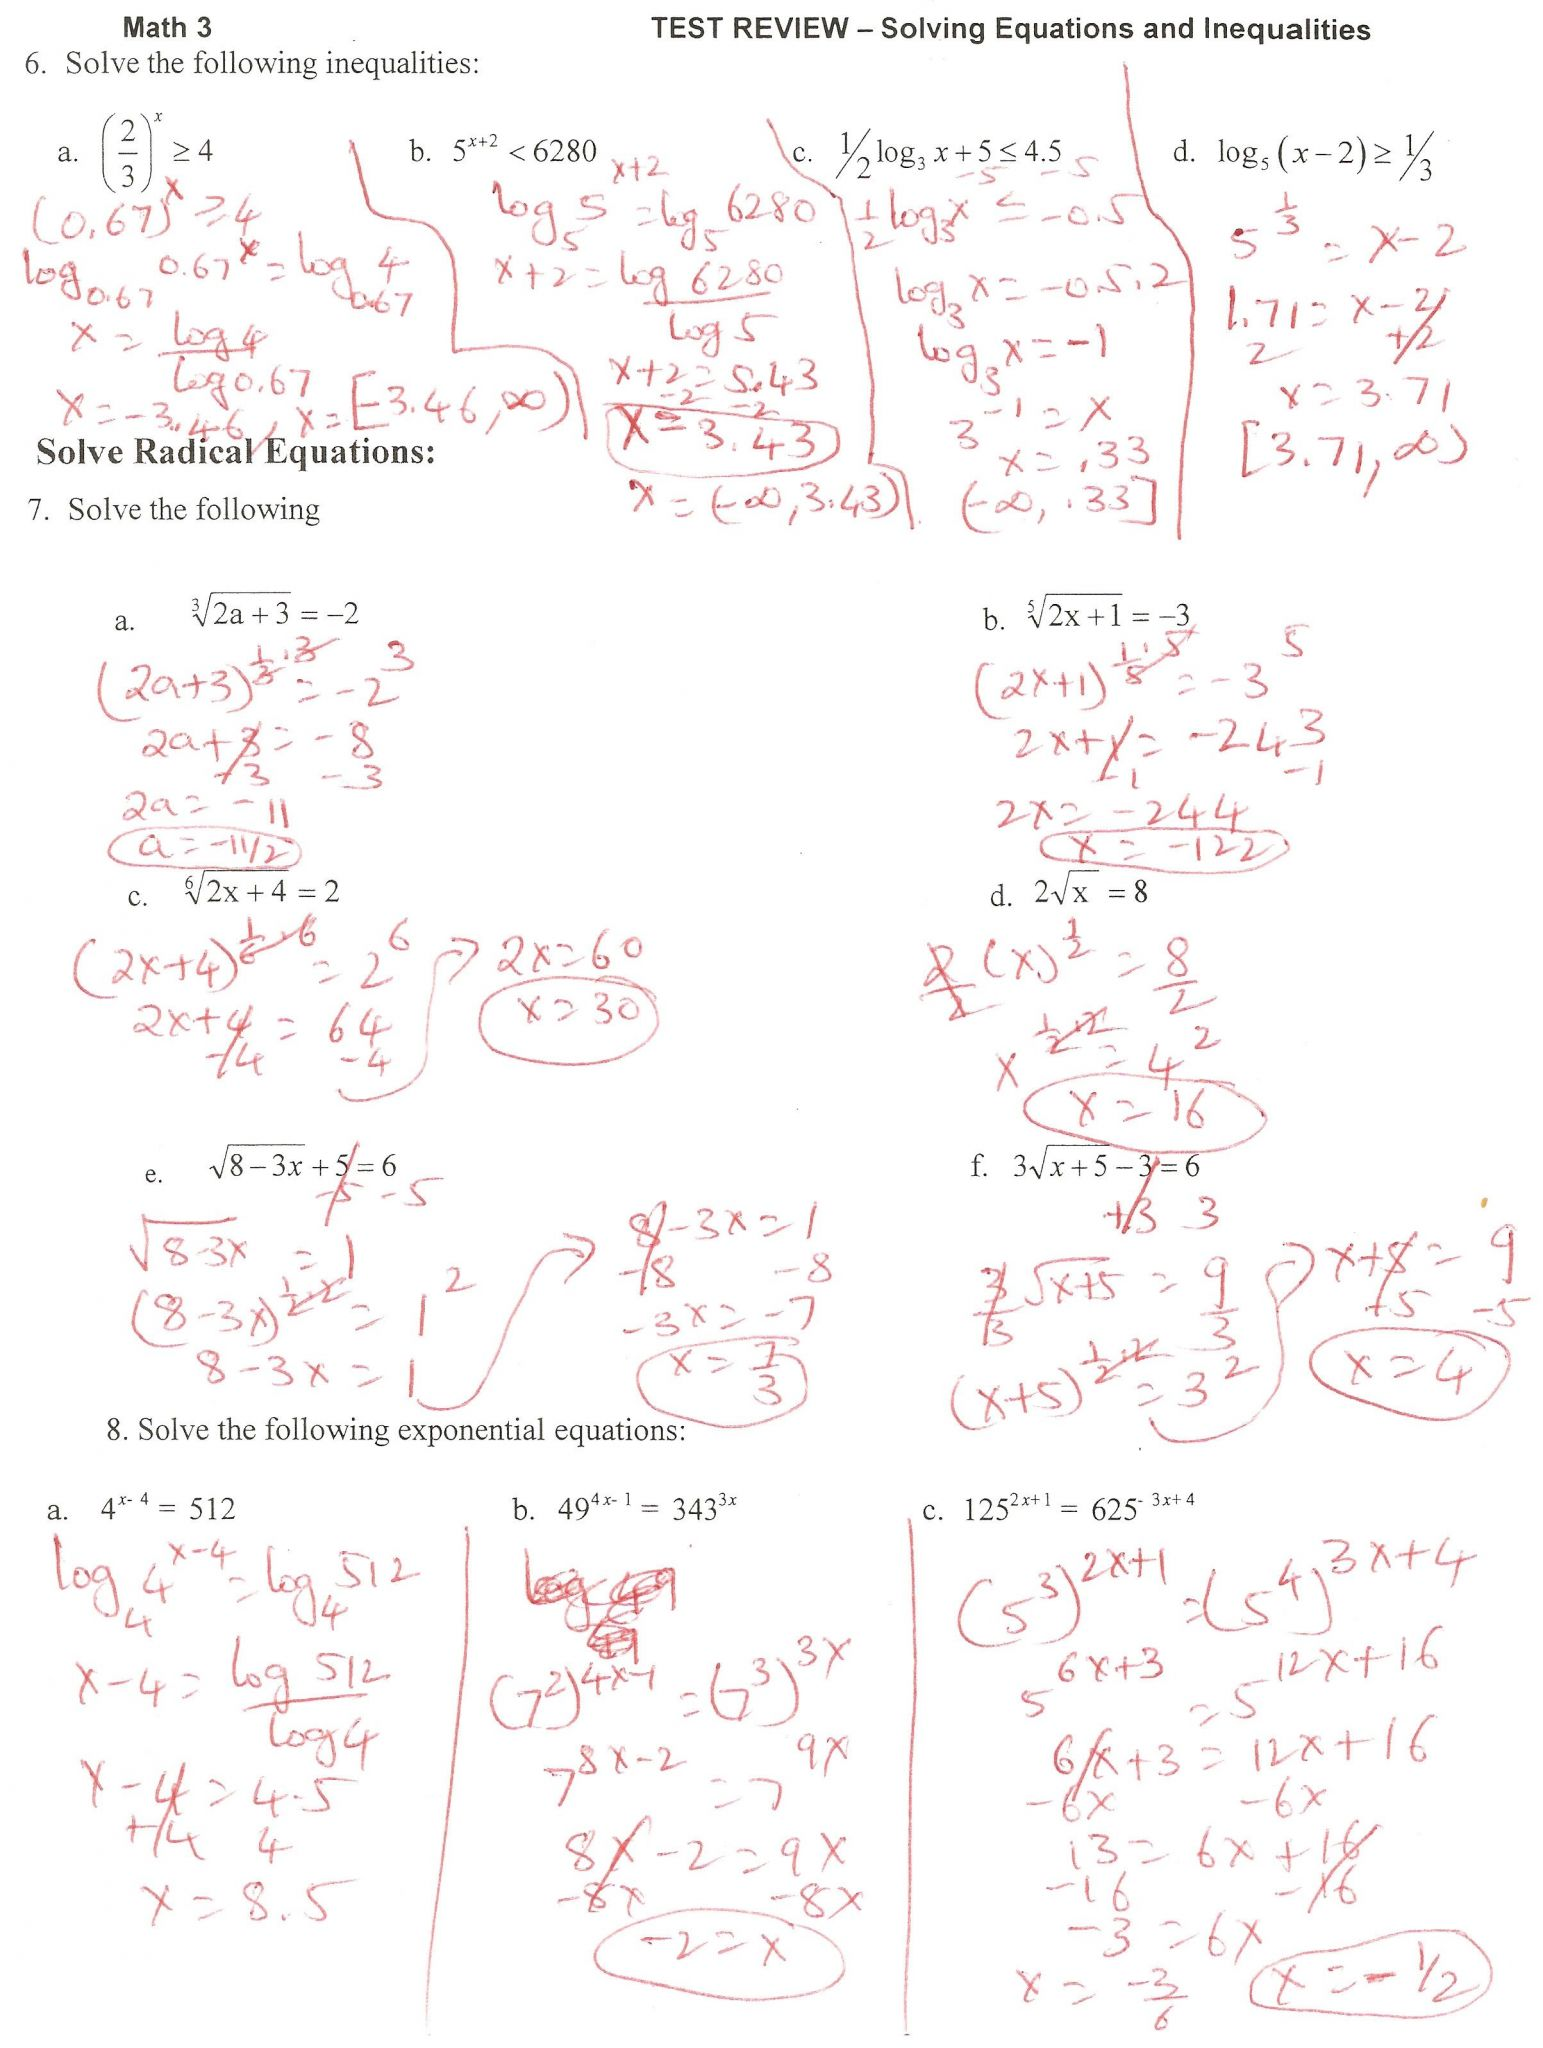 7 Solving Radical Equations And Inequalities Worksheet